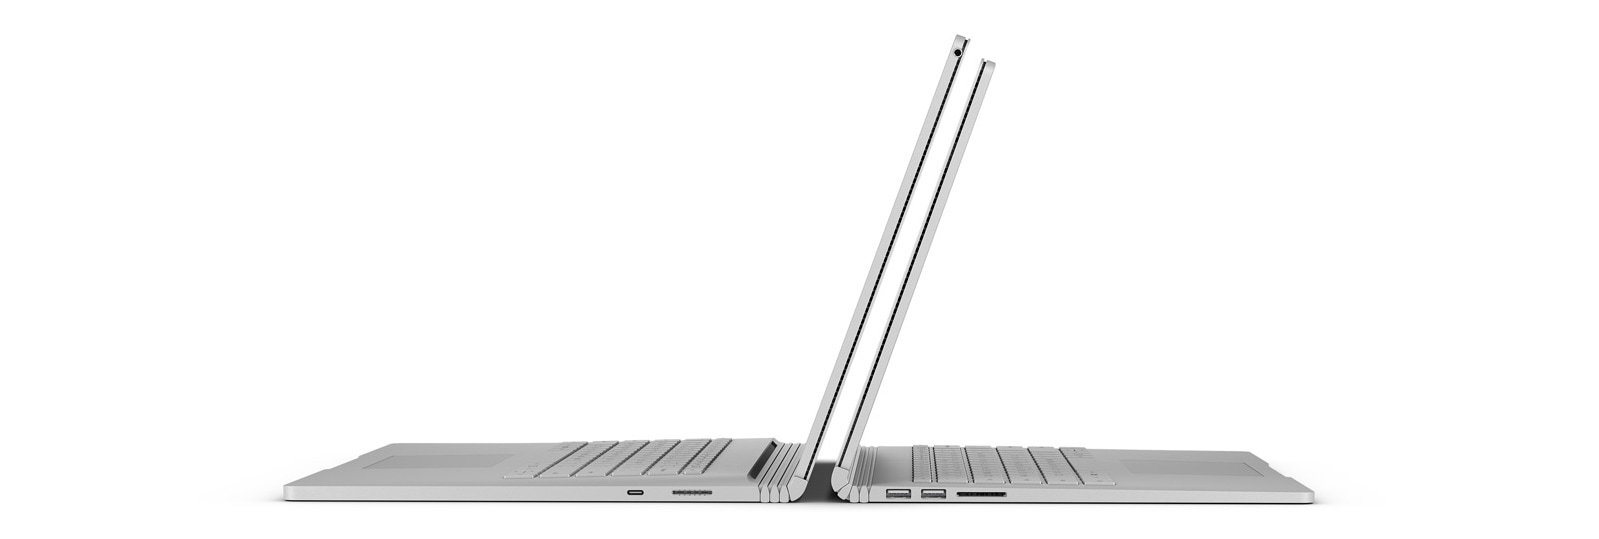 "Un dispositivo Surface Book 2 de 13"" y otro de 15"" uno contra otro"